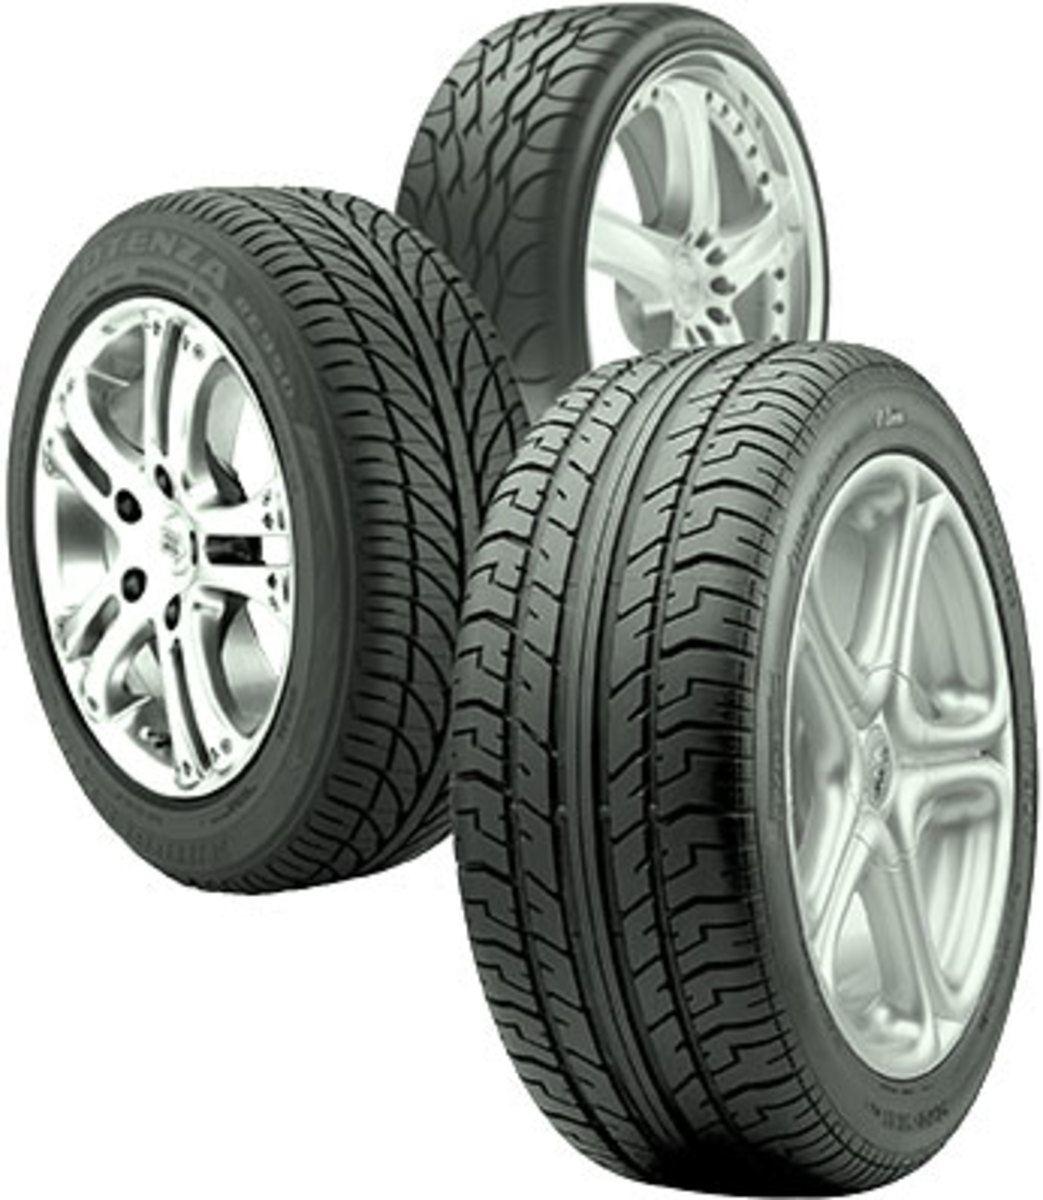 All you need to know about your car tires